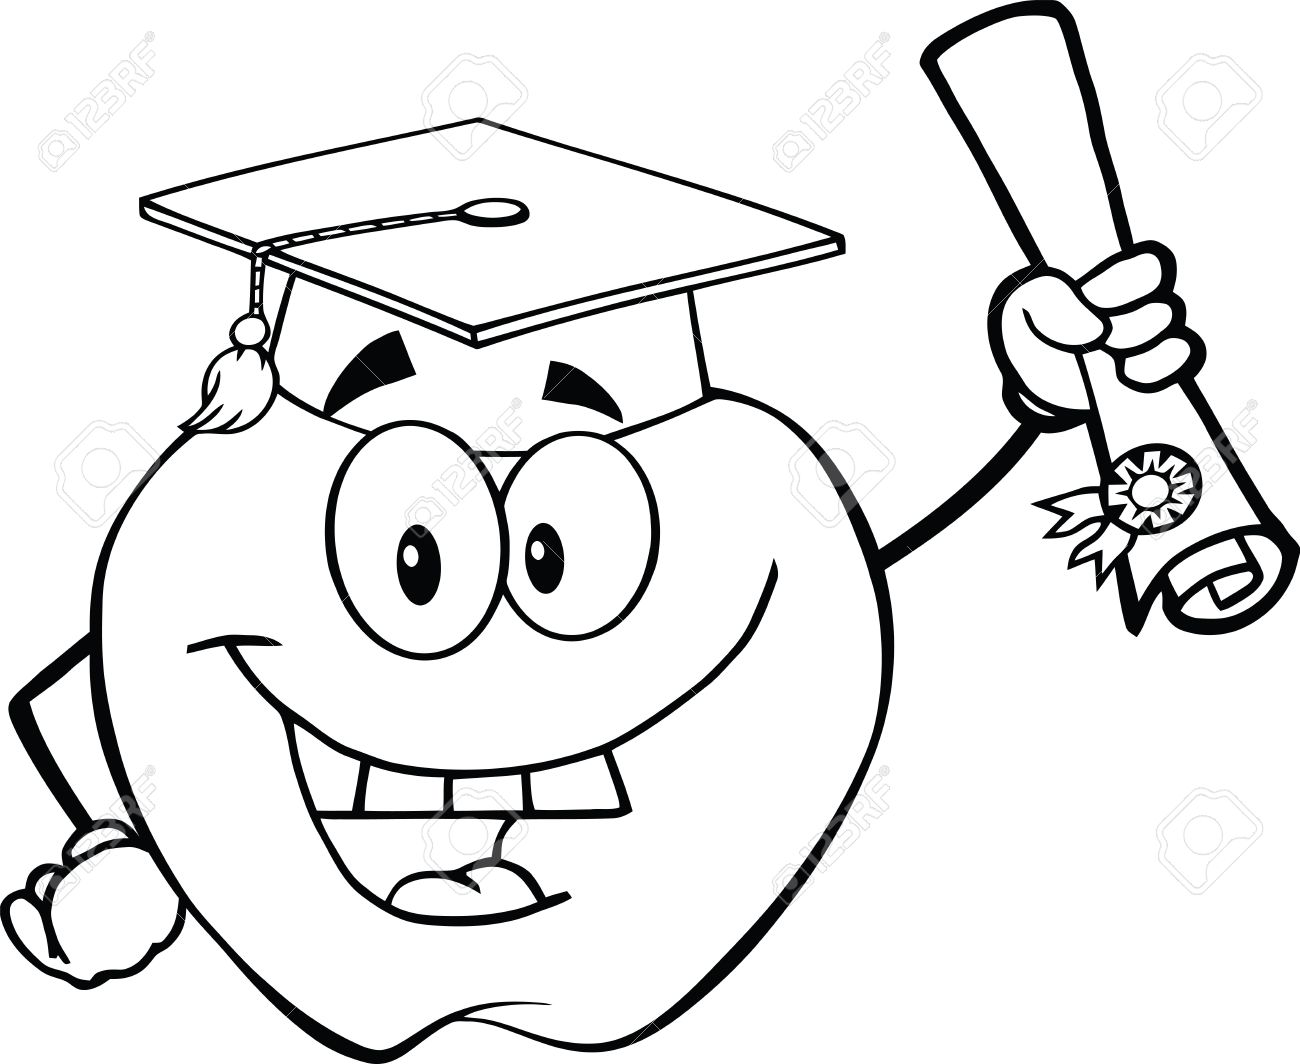 1300x1064 Black And White Happy Apple Character Graduate Holding A Diploma